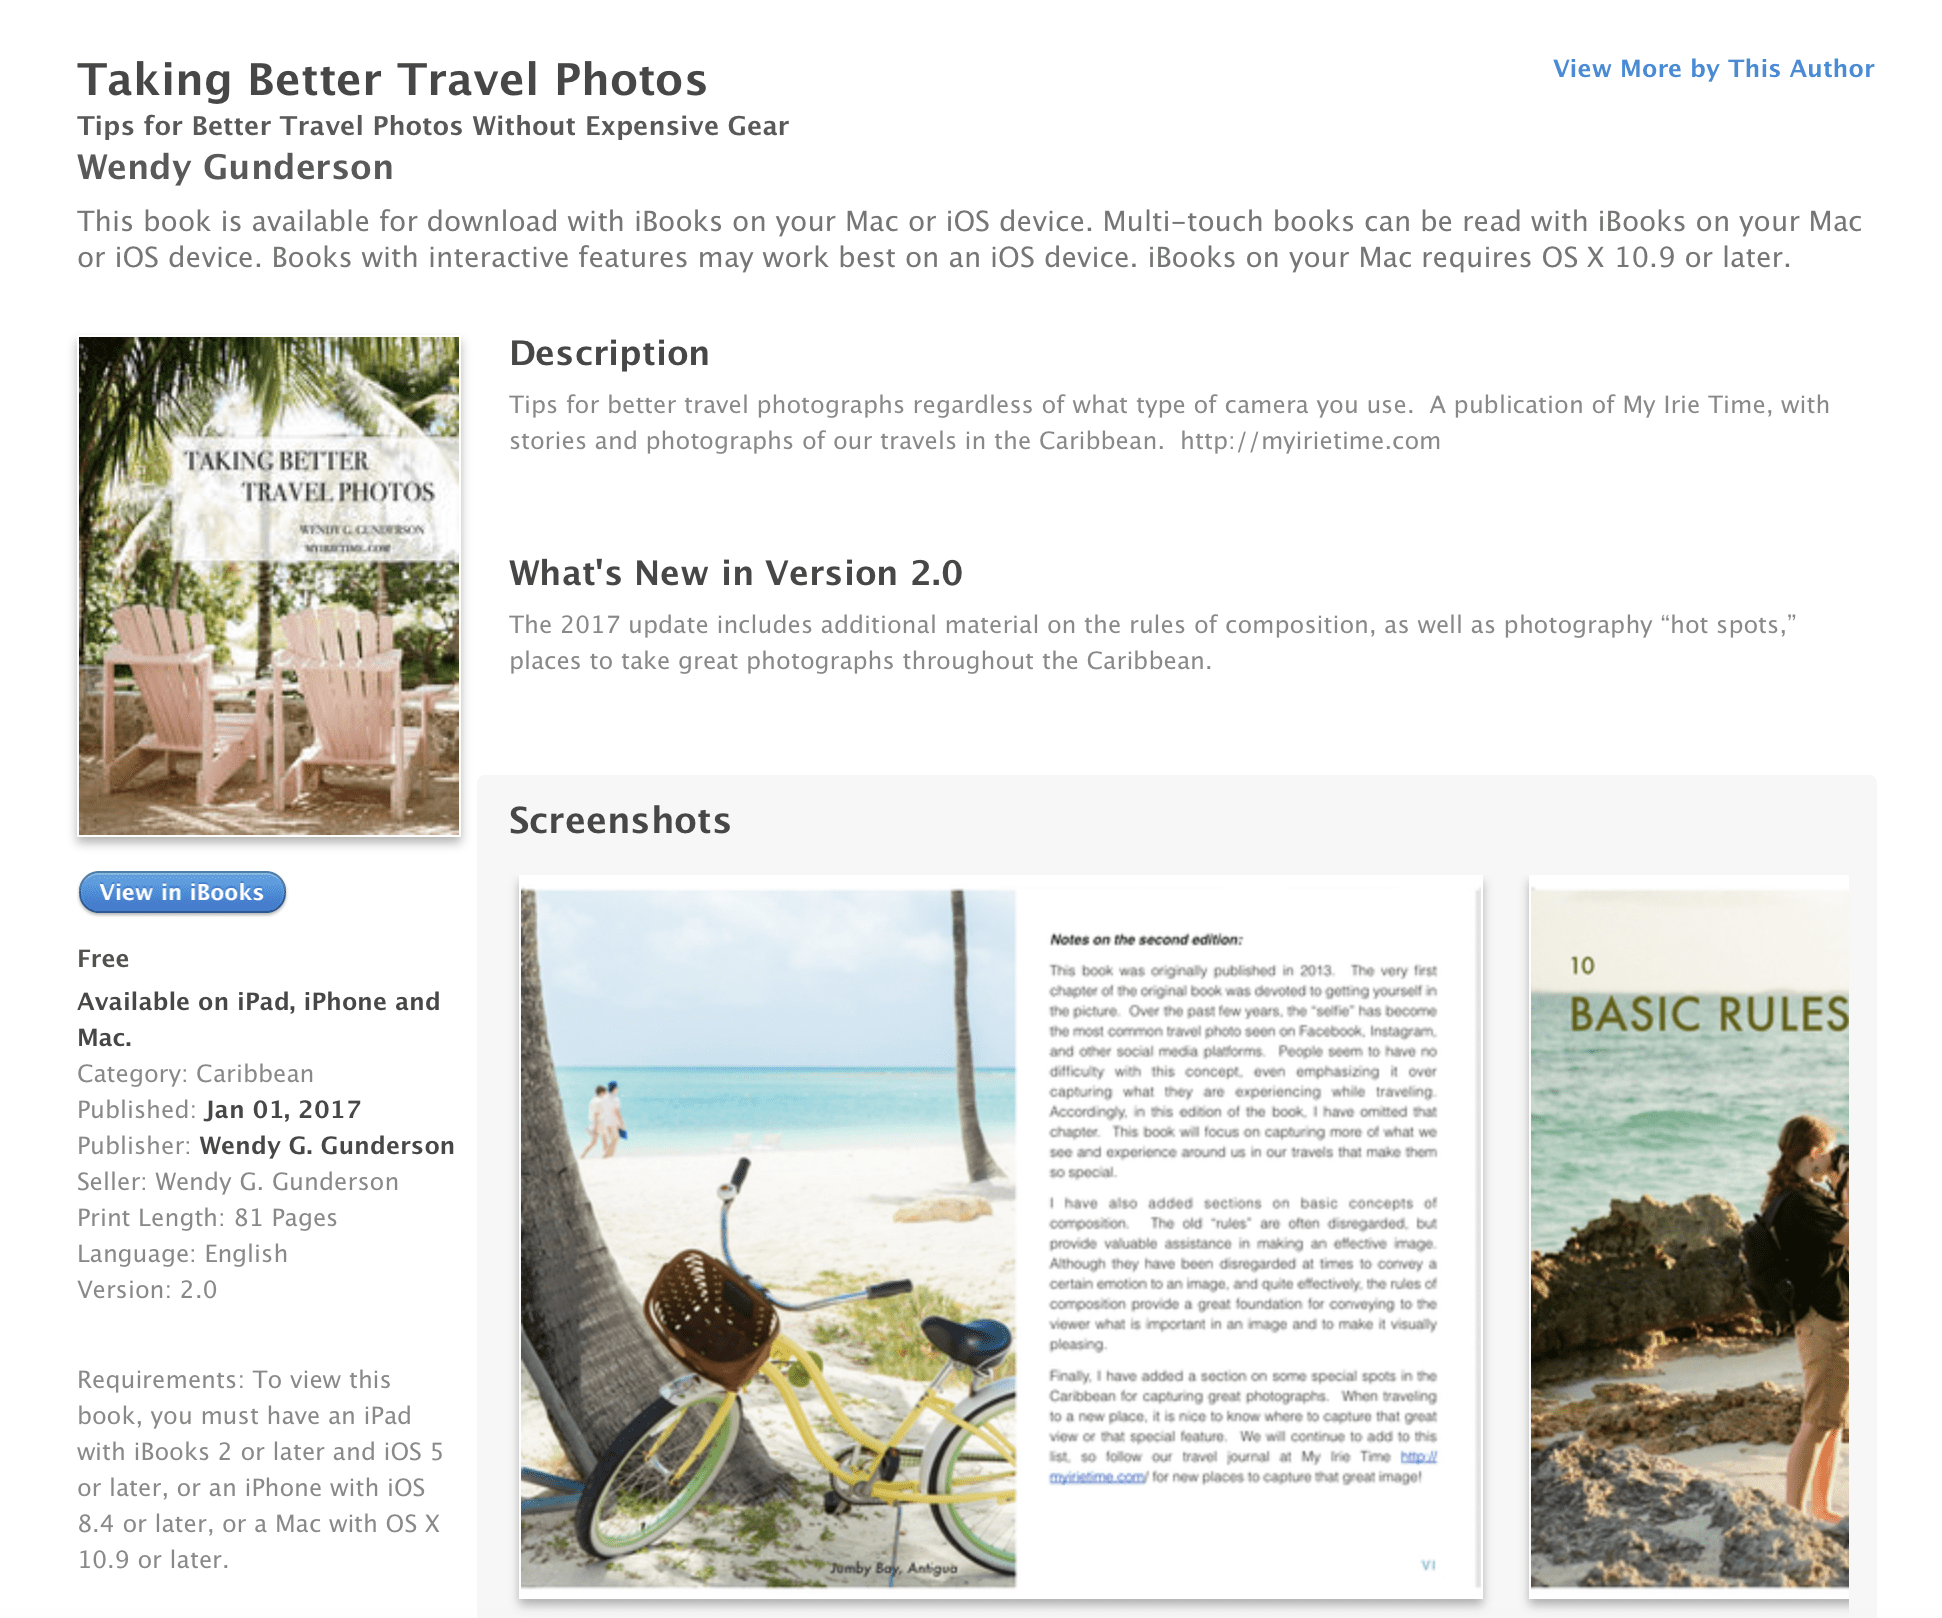 Taking Better Travel Photos iBook